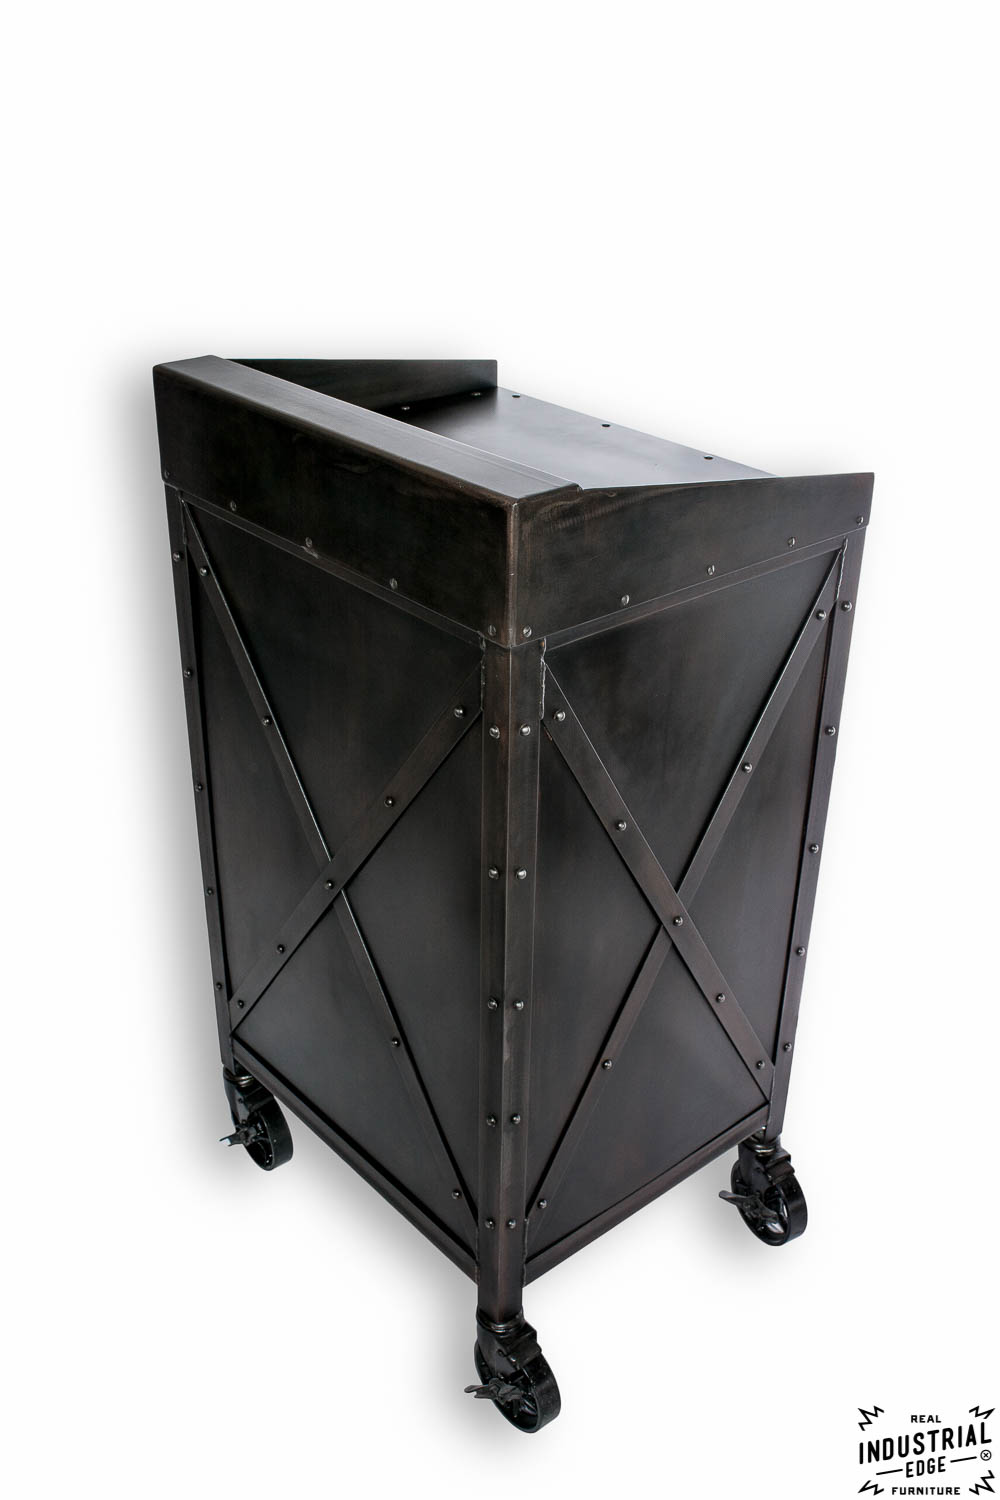 x series    small hostess stand    point of sale  u2013 real industrial edge furniture